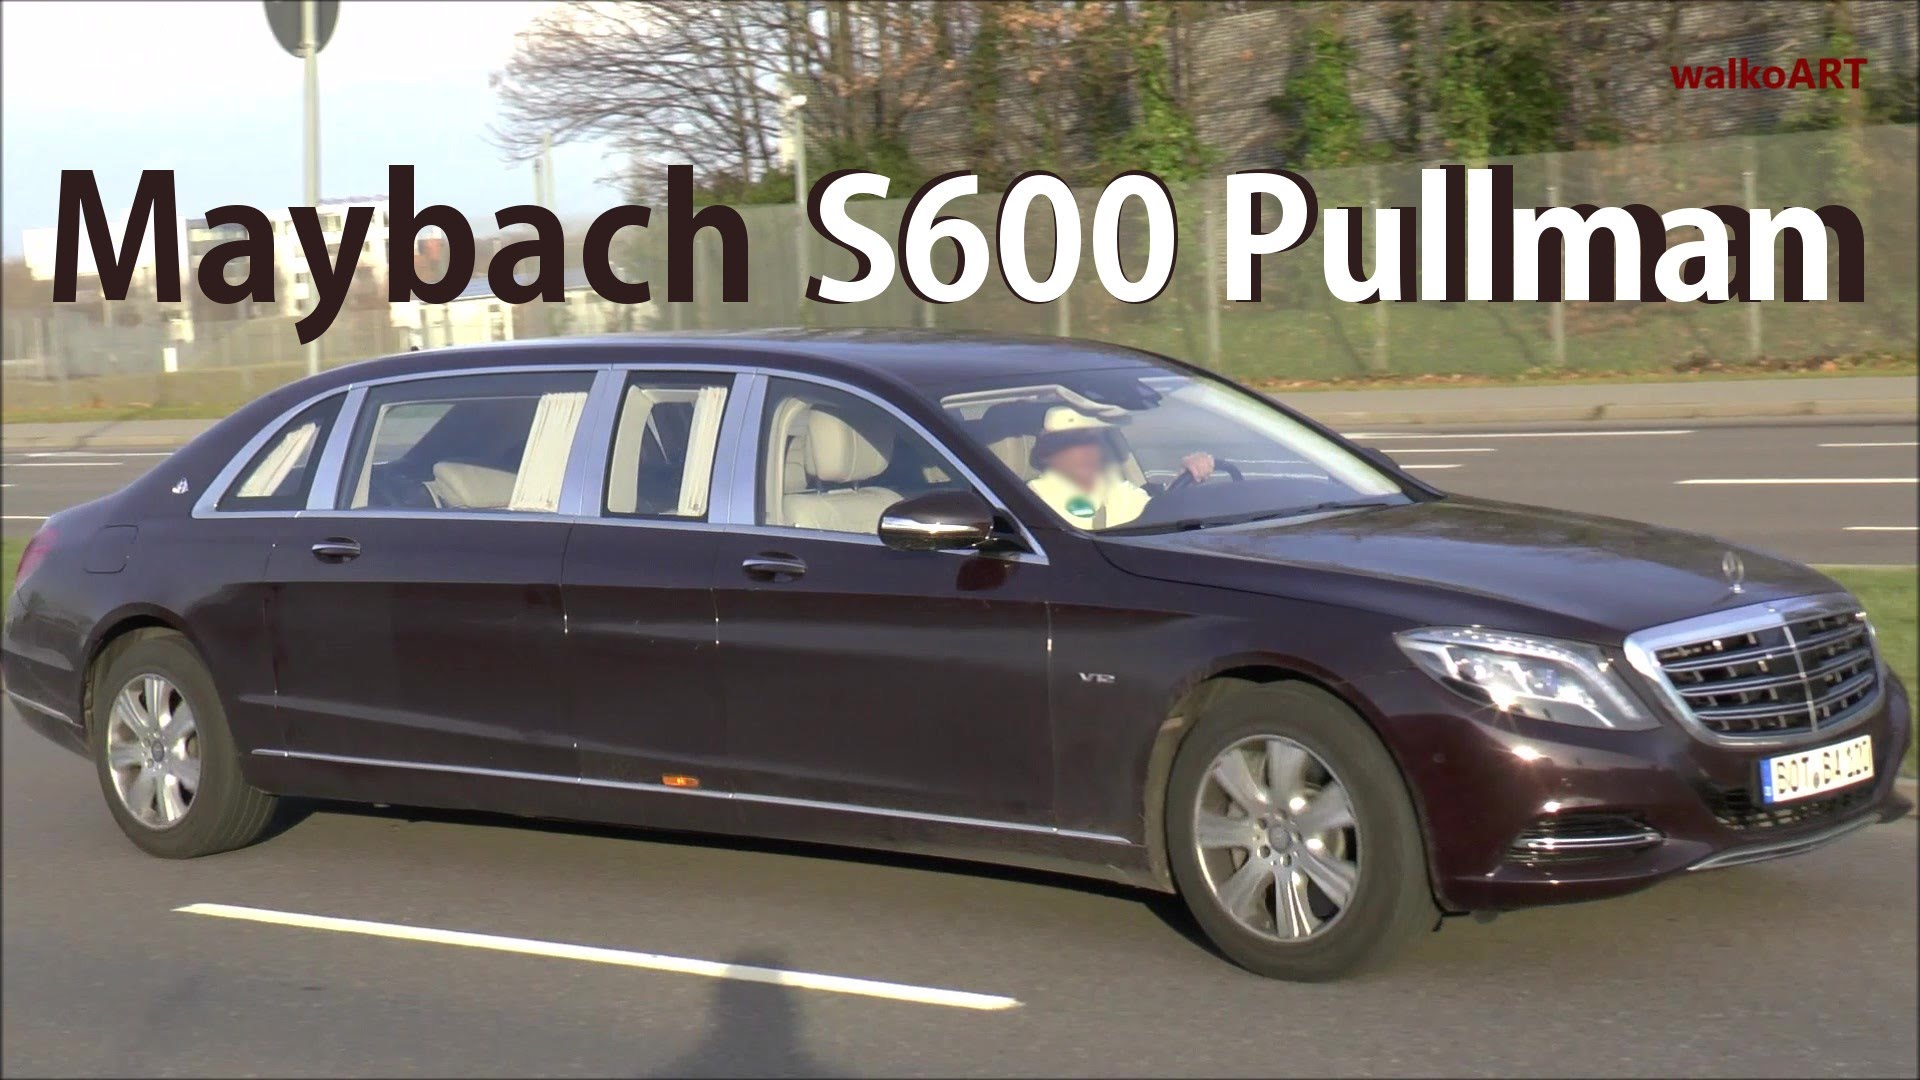 https://www.legendaryspeed.com/wp-content/uploads/2015/12/insanely-luxurious-mercedes-maybach-pullman-caught-on-the-streets.jpg